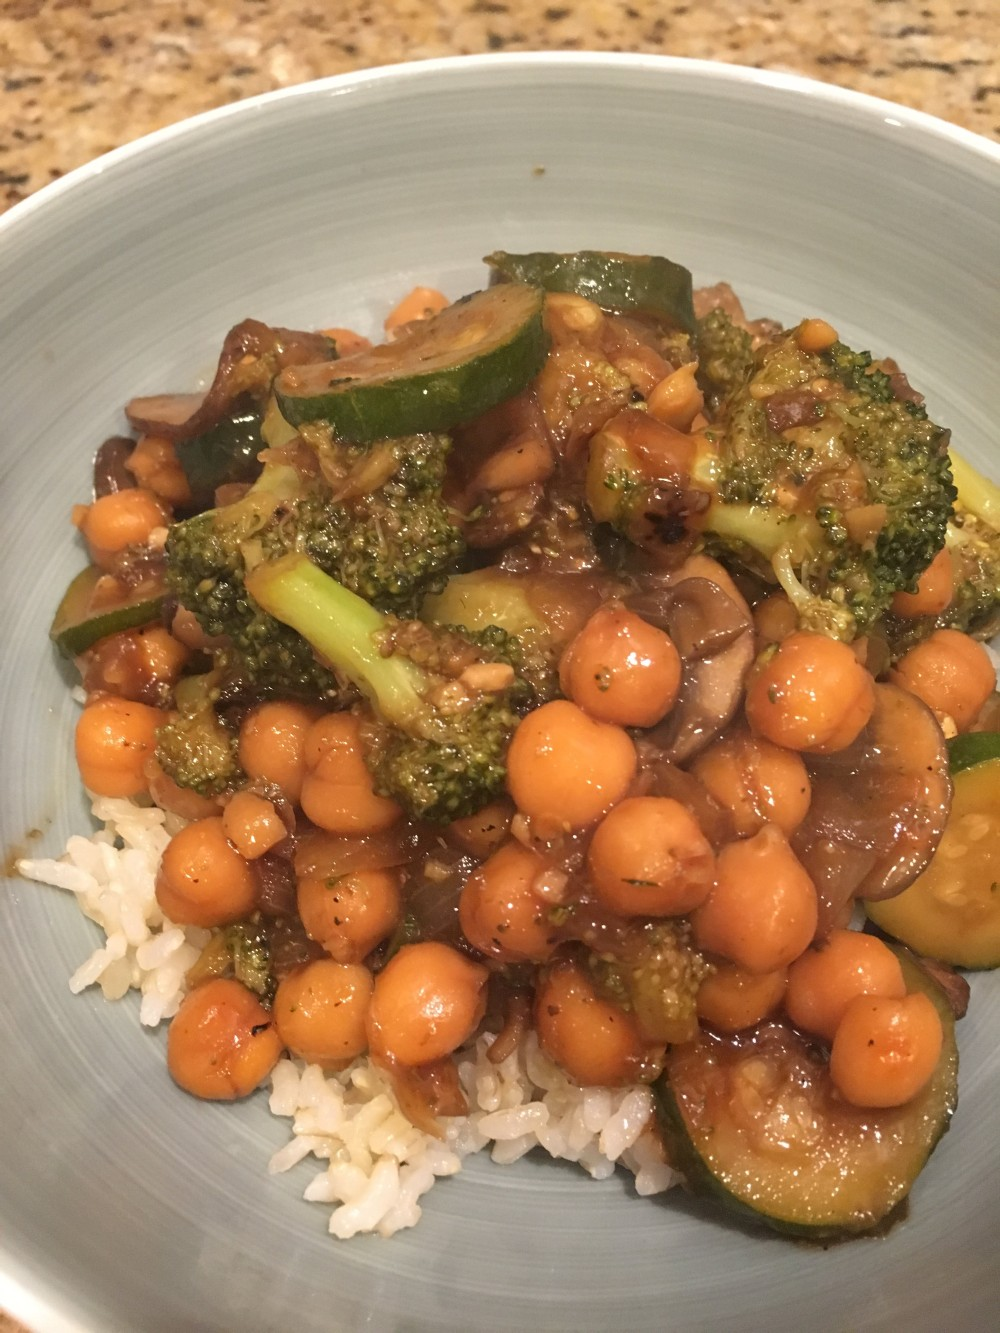 Chickpea and Veggie Stir Fry